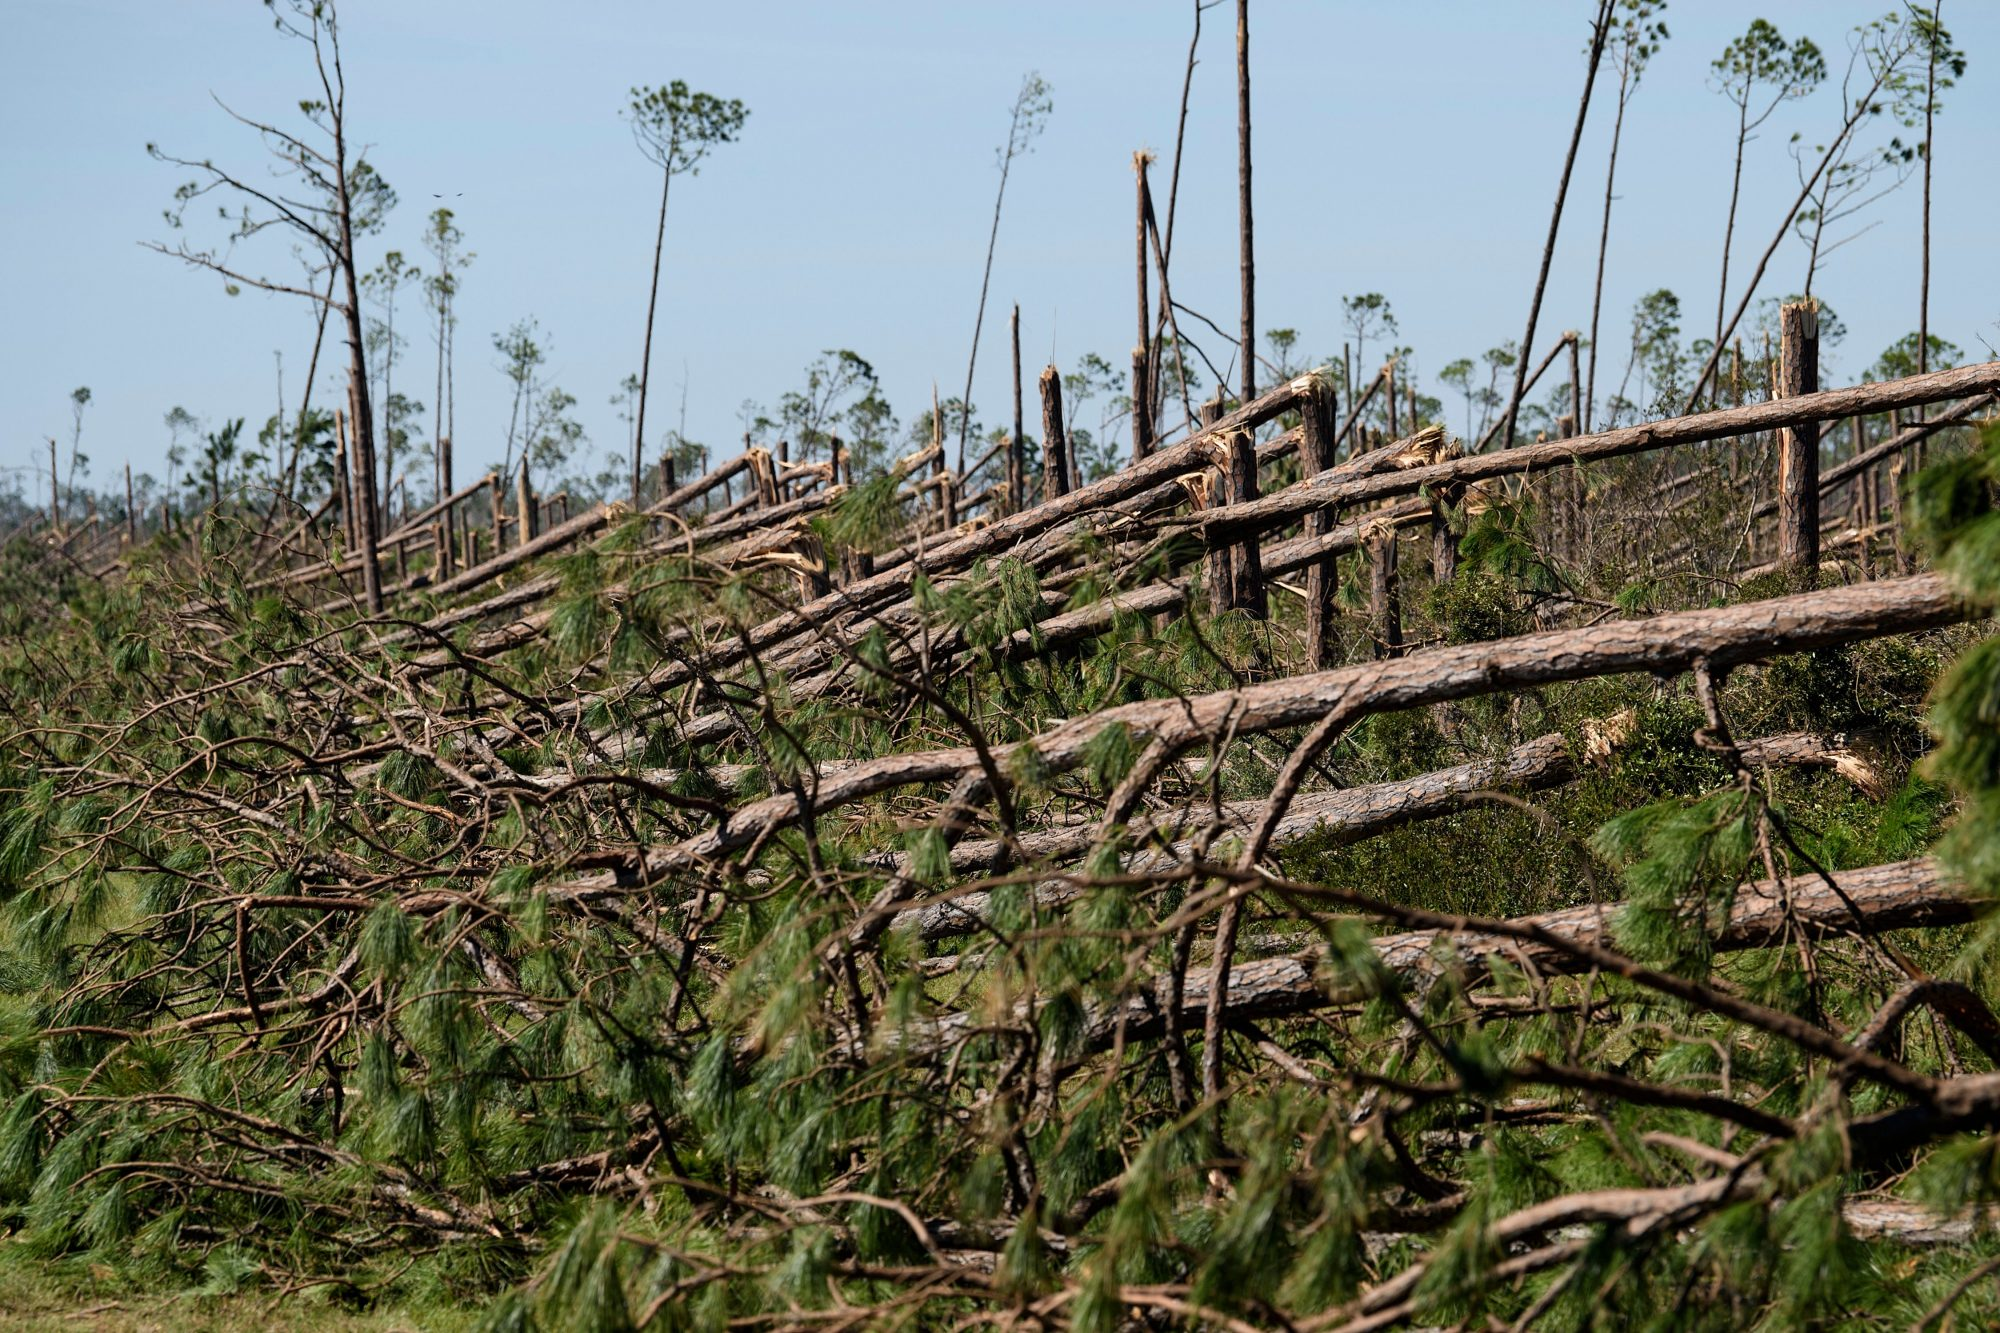 WATCH: 3 Million Acres of Florida Timber Rotting Away 8 Months After Hurricane Michael